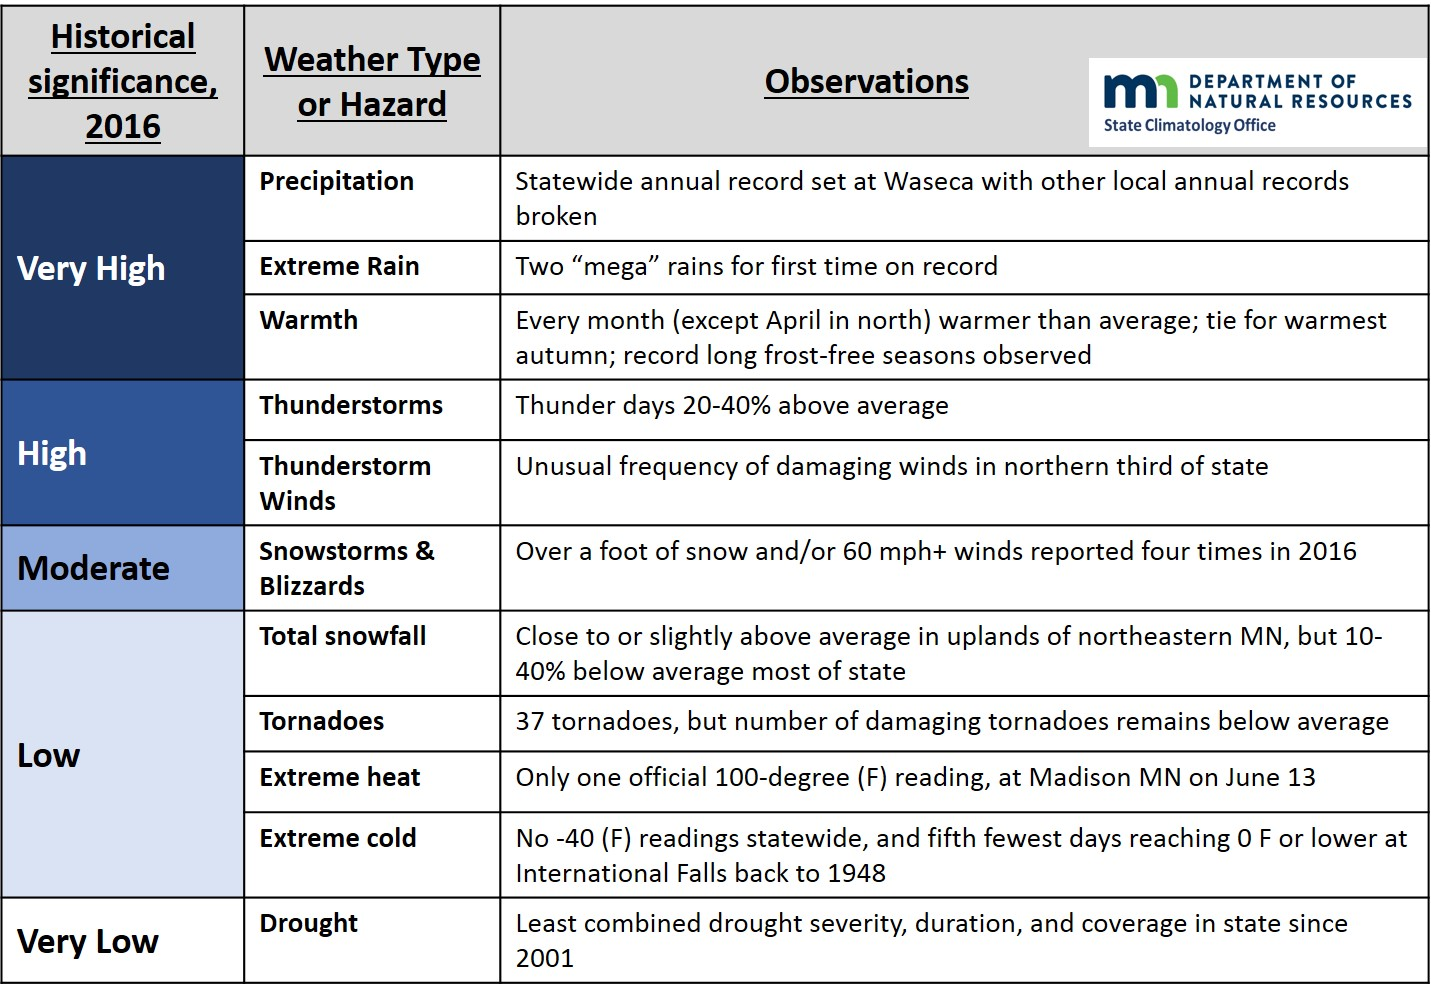 Snapshot table showing historical significance of different types of weather in Minnesota in 2016